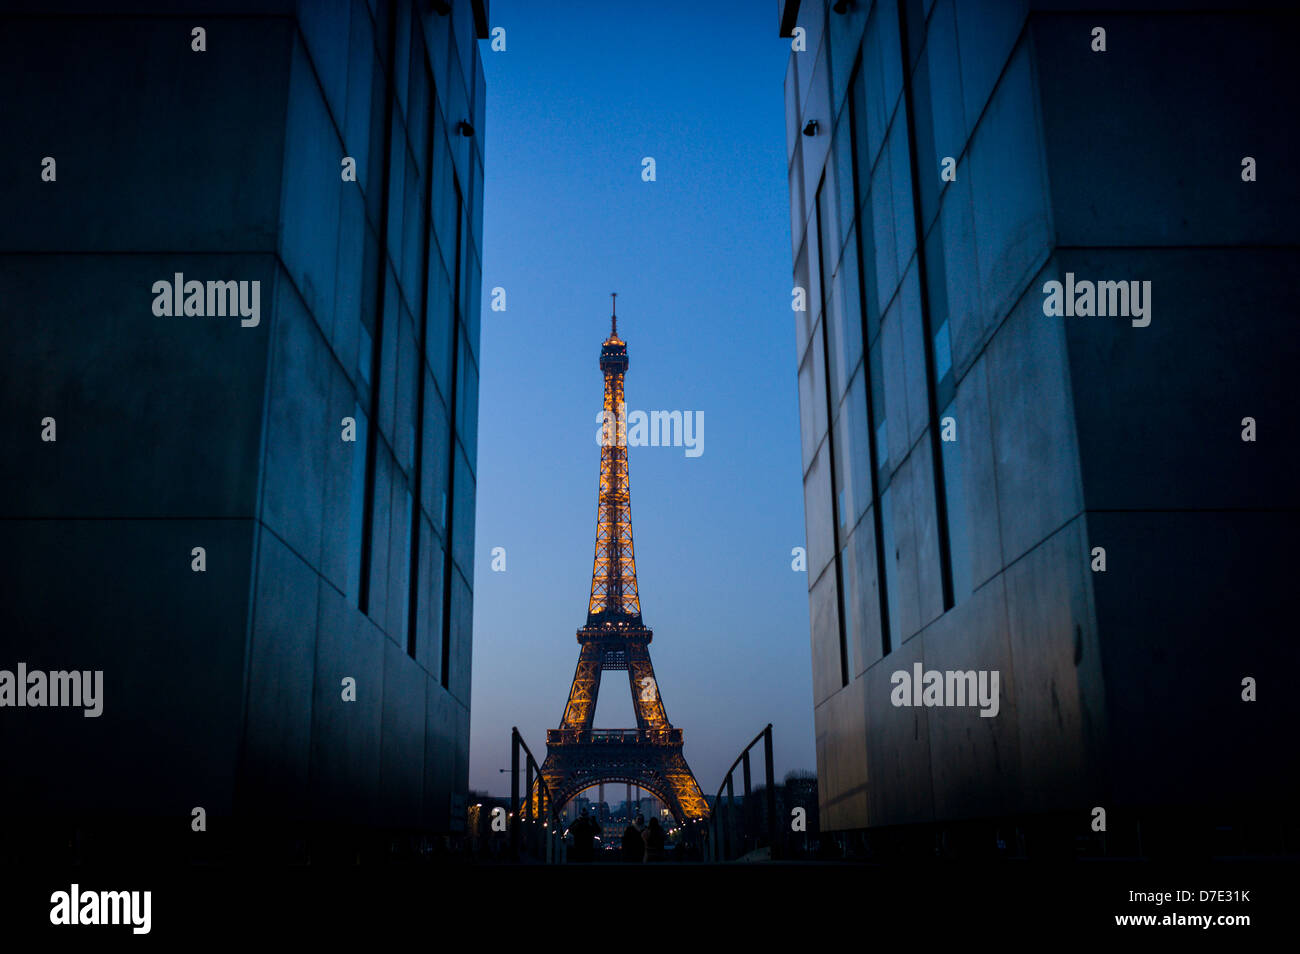 View of The Eiffel Tower from Ecole Militaire. - Stock Image